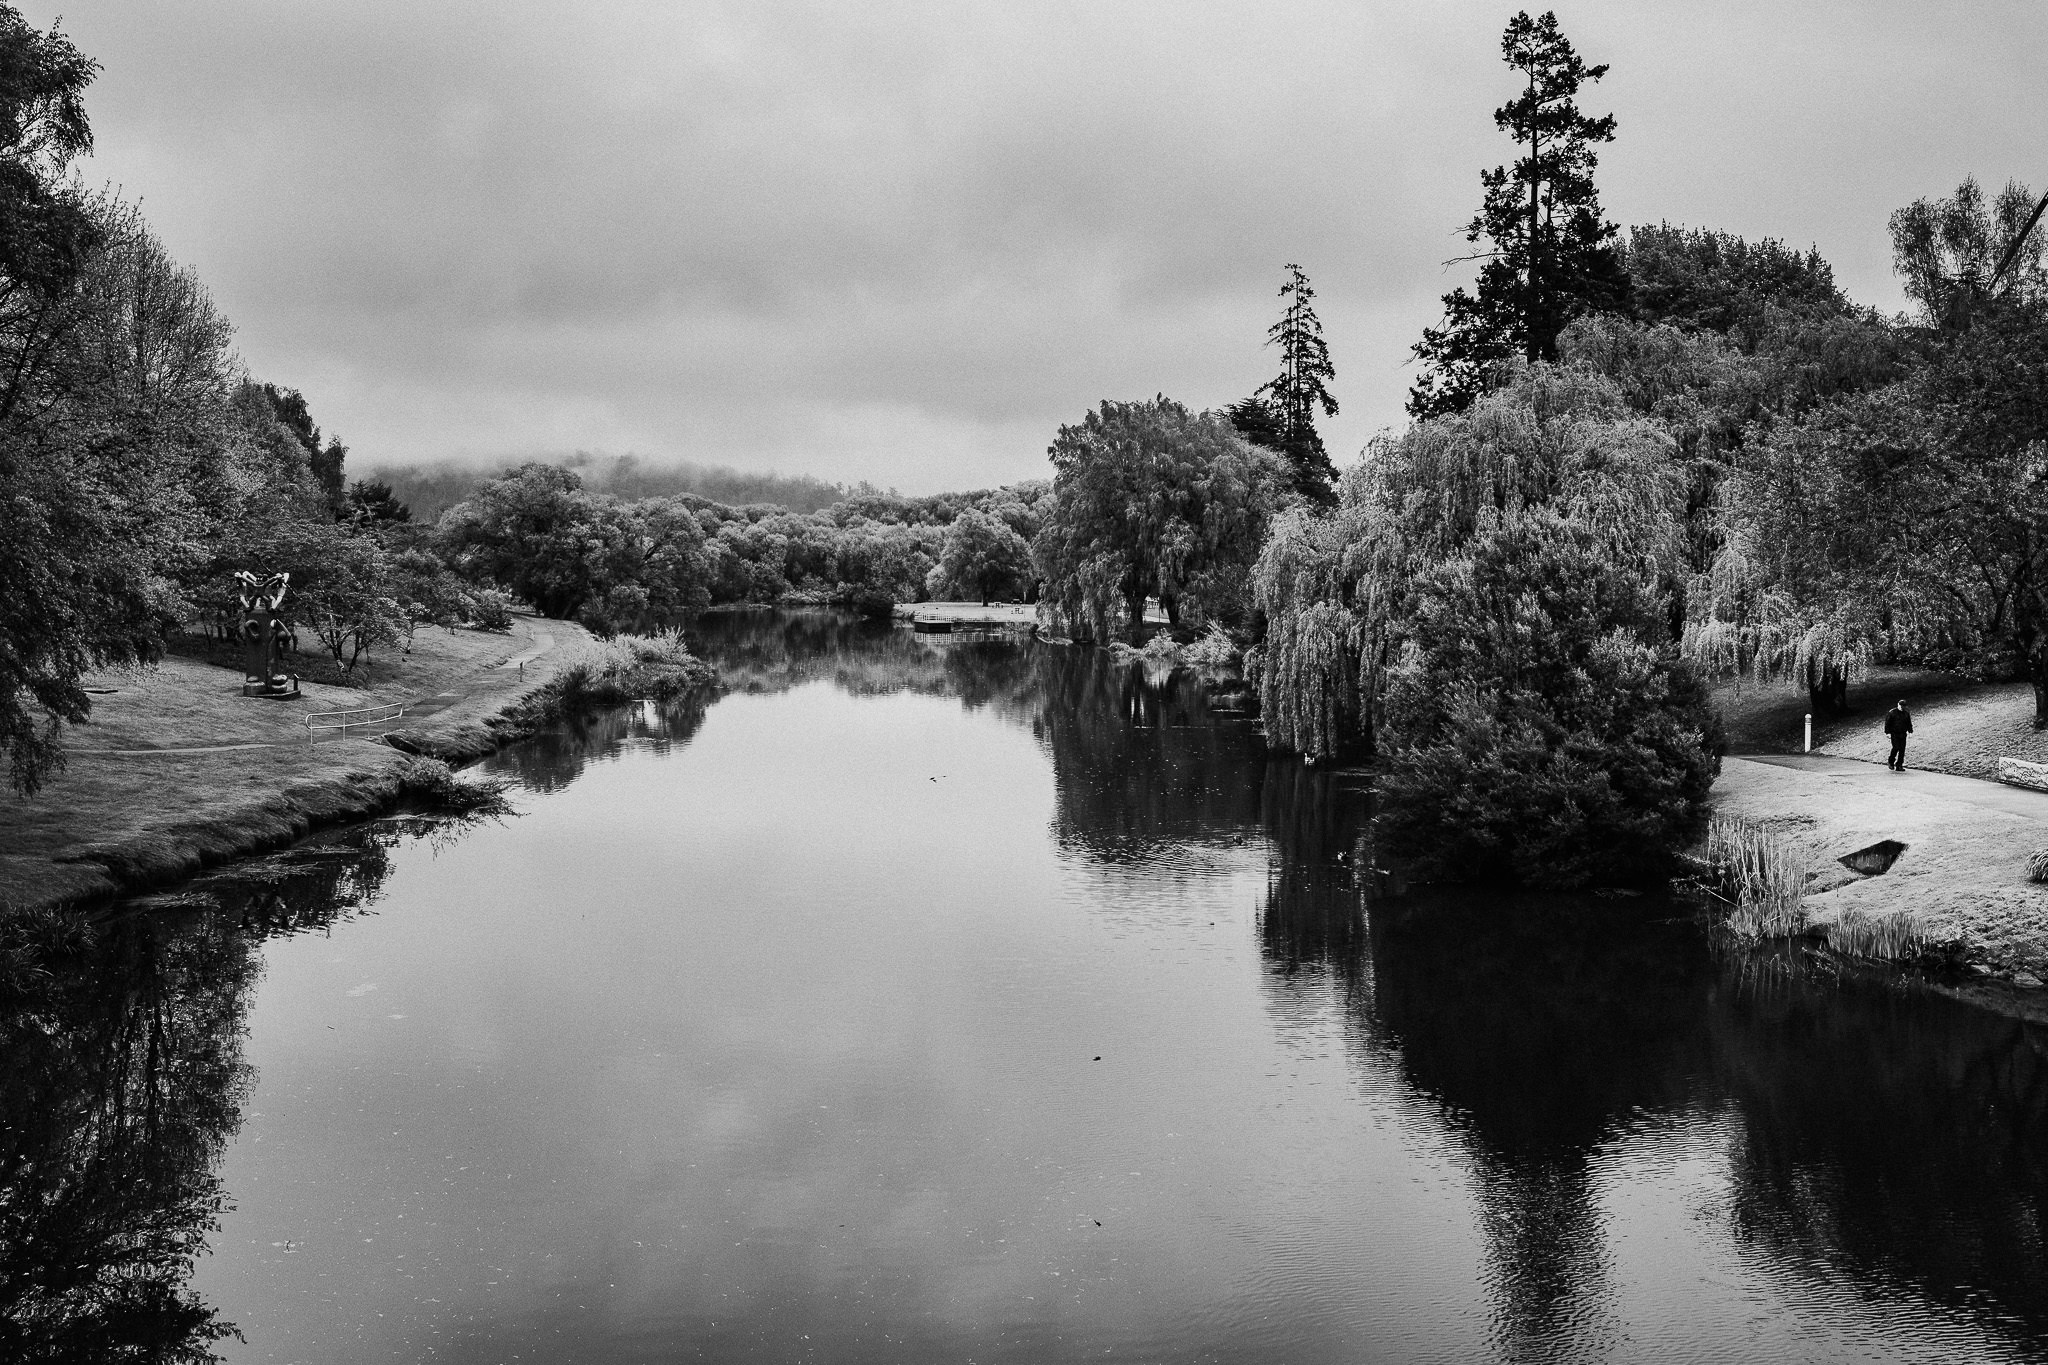 201/365 | The Meander River flows through farmland from the sacred western mountains, kooparoona niara, before carving its way through Deloraine. People walk it's banks each day, beneath the sequoias and blossoms, and if they're lucky sight the resident platypi.